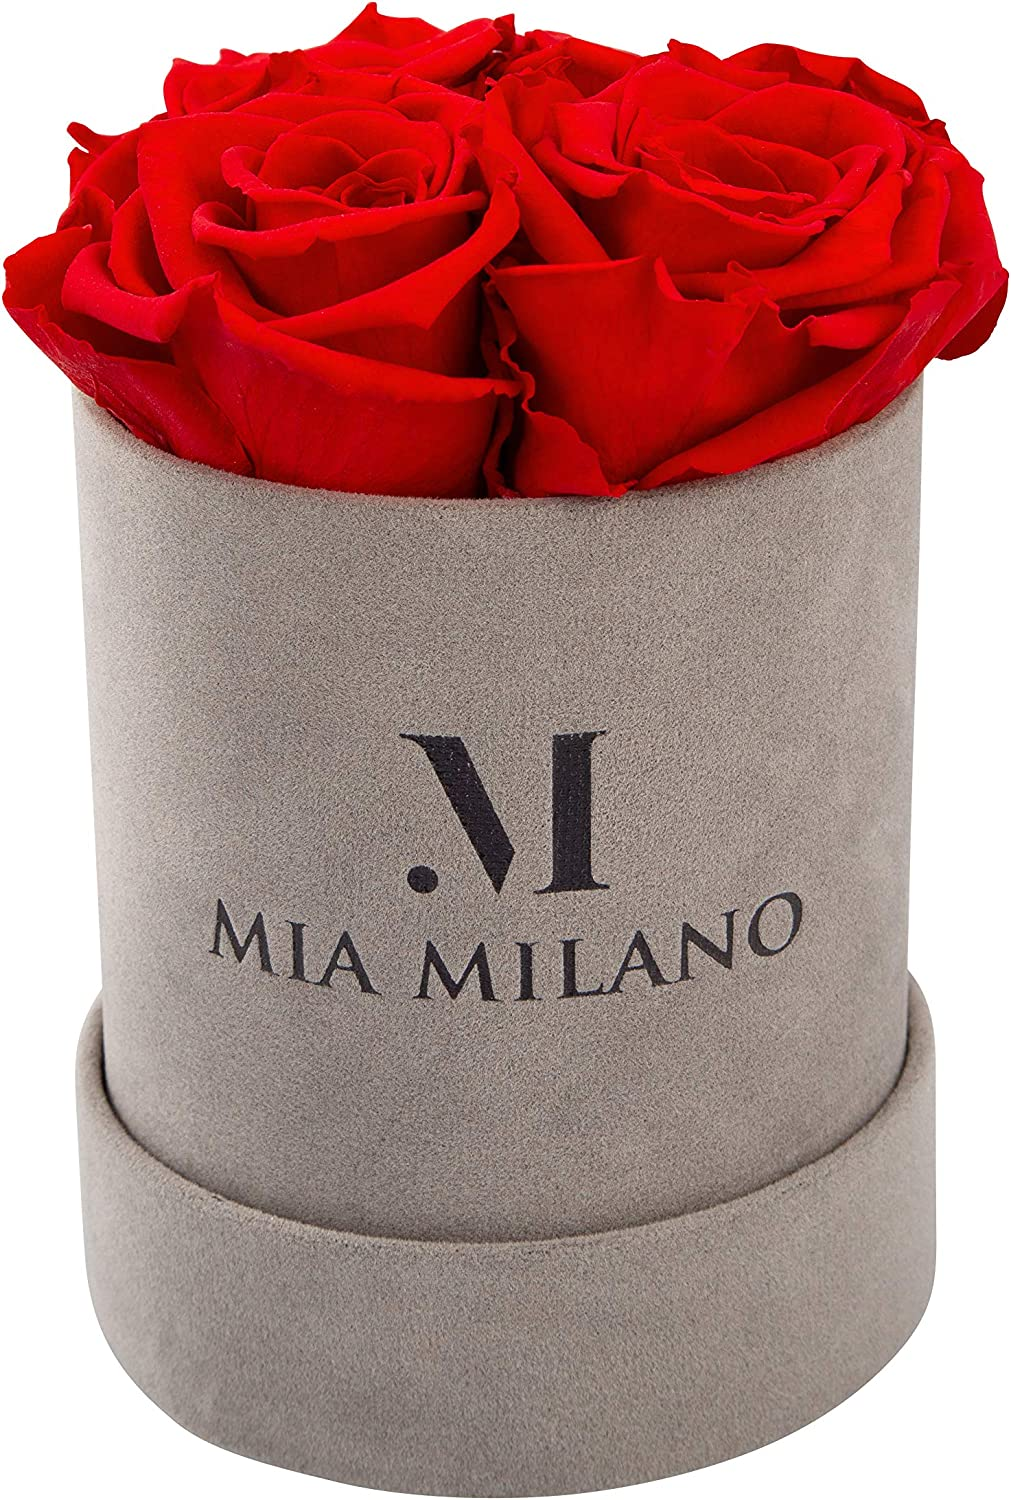 Mia Milano Velvet Box with 4 Infinity Roses | Flower Box (Home Decor) Preserved Rose 3 Years Durable